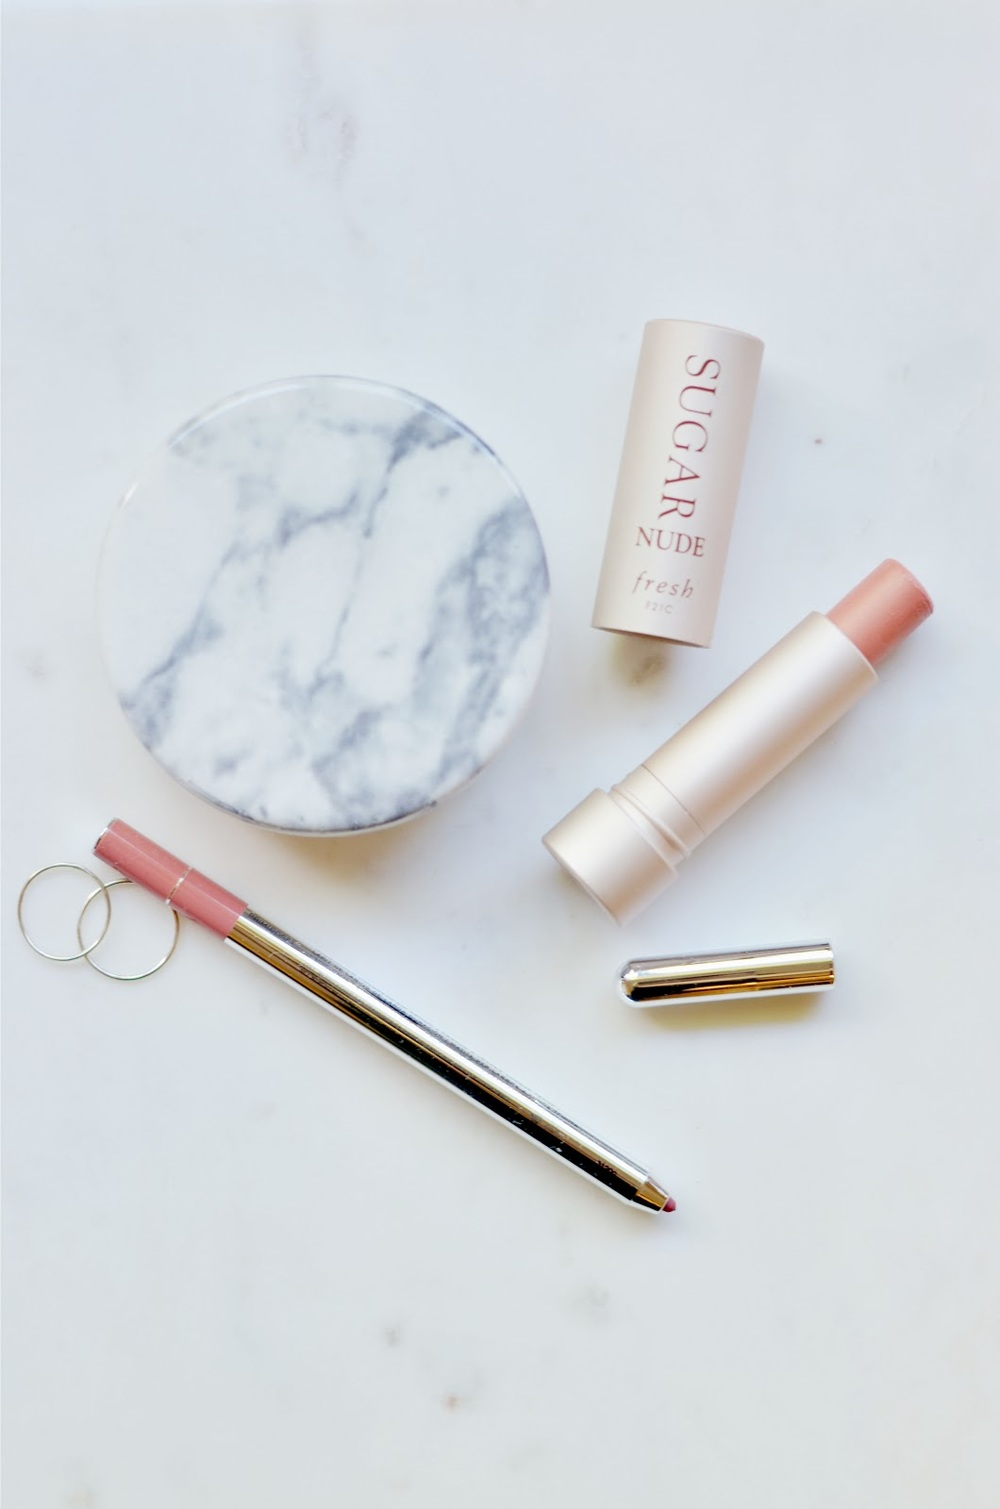 Fresh Sugar Lip Treatment, Fresh Nude, Marc Jacobs Prim(Rose), Marc Jacobs Primrose